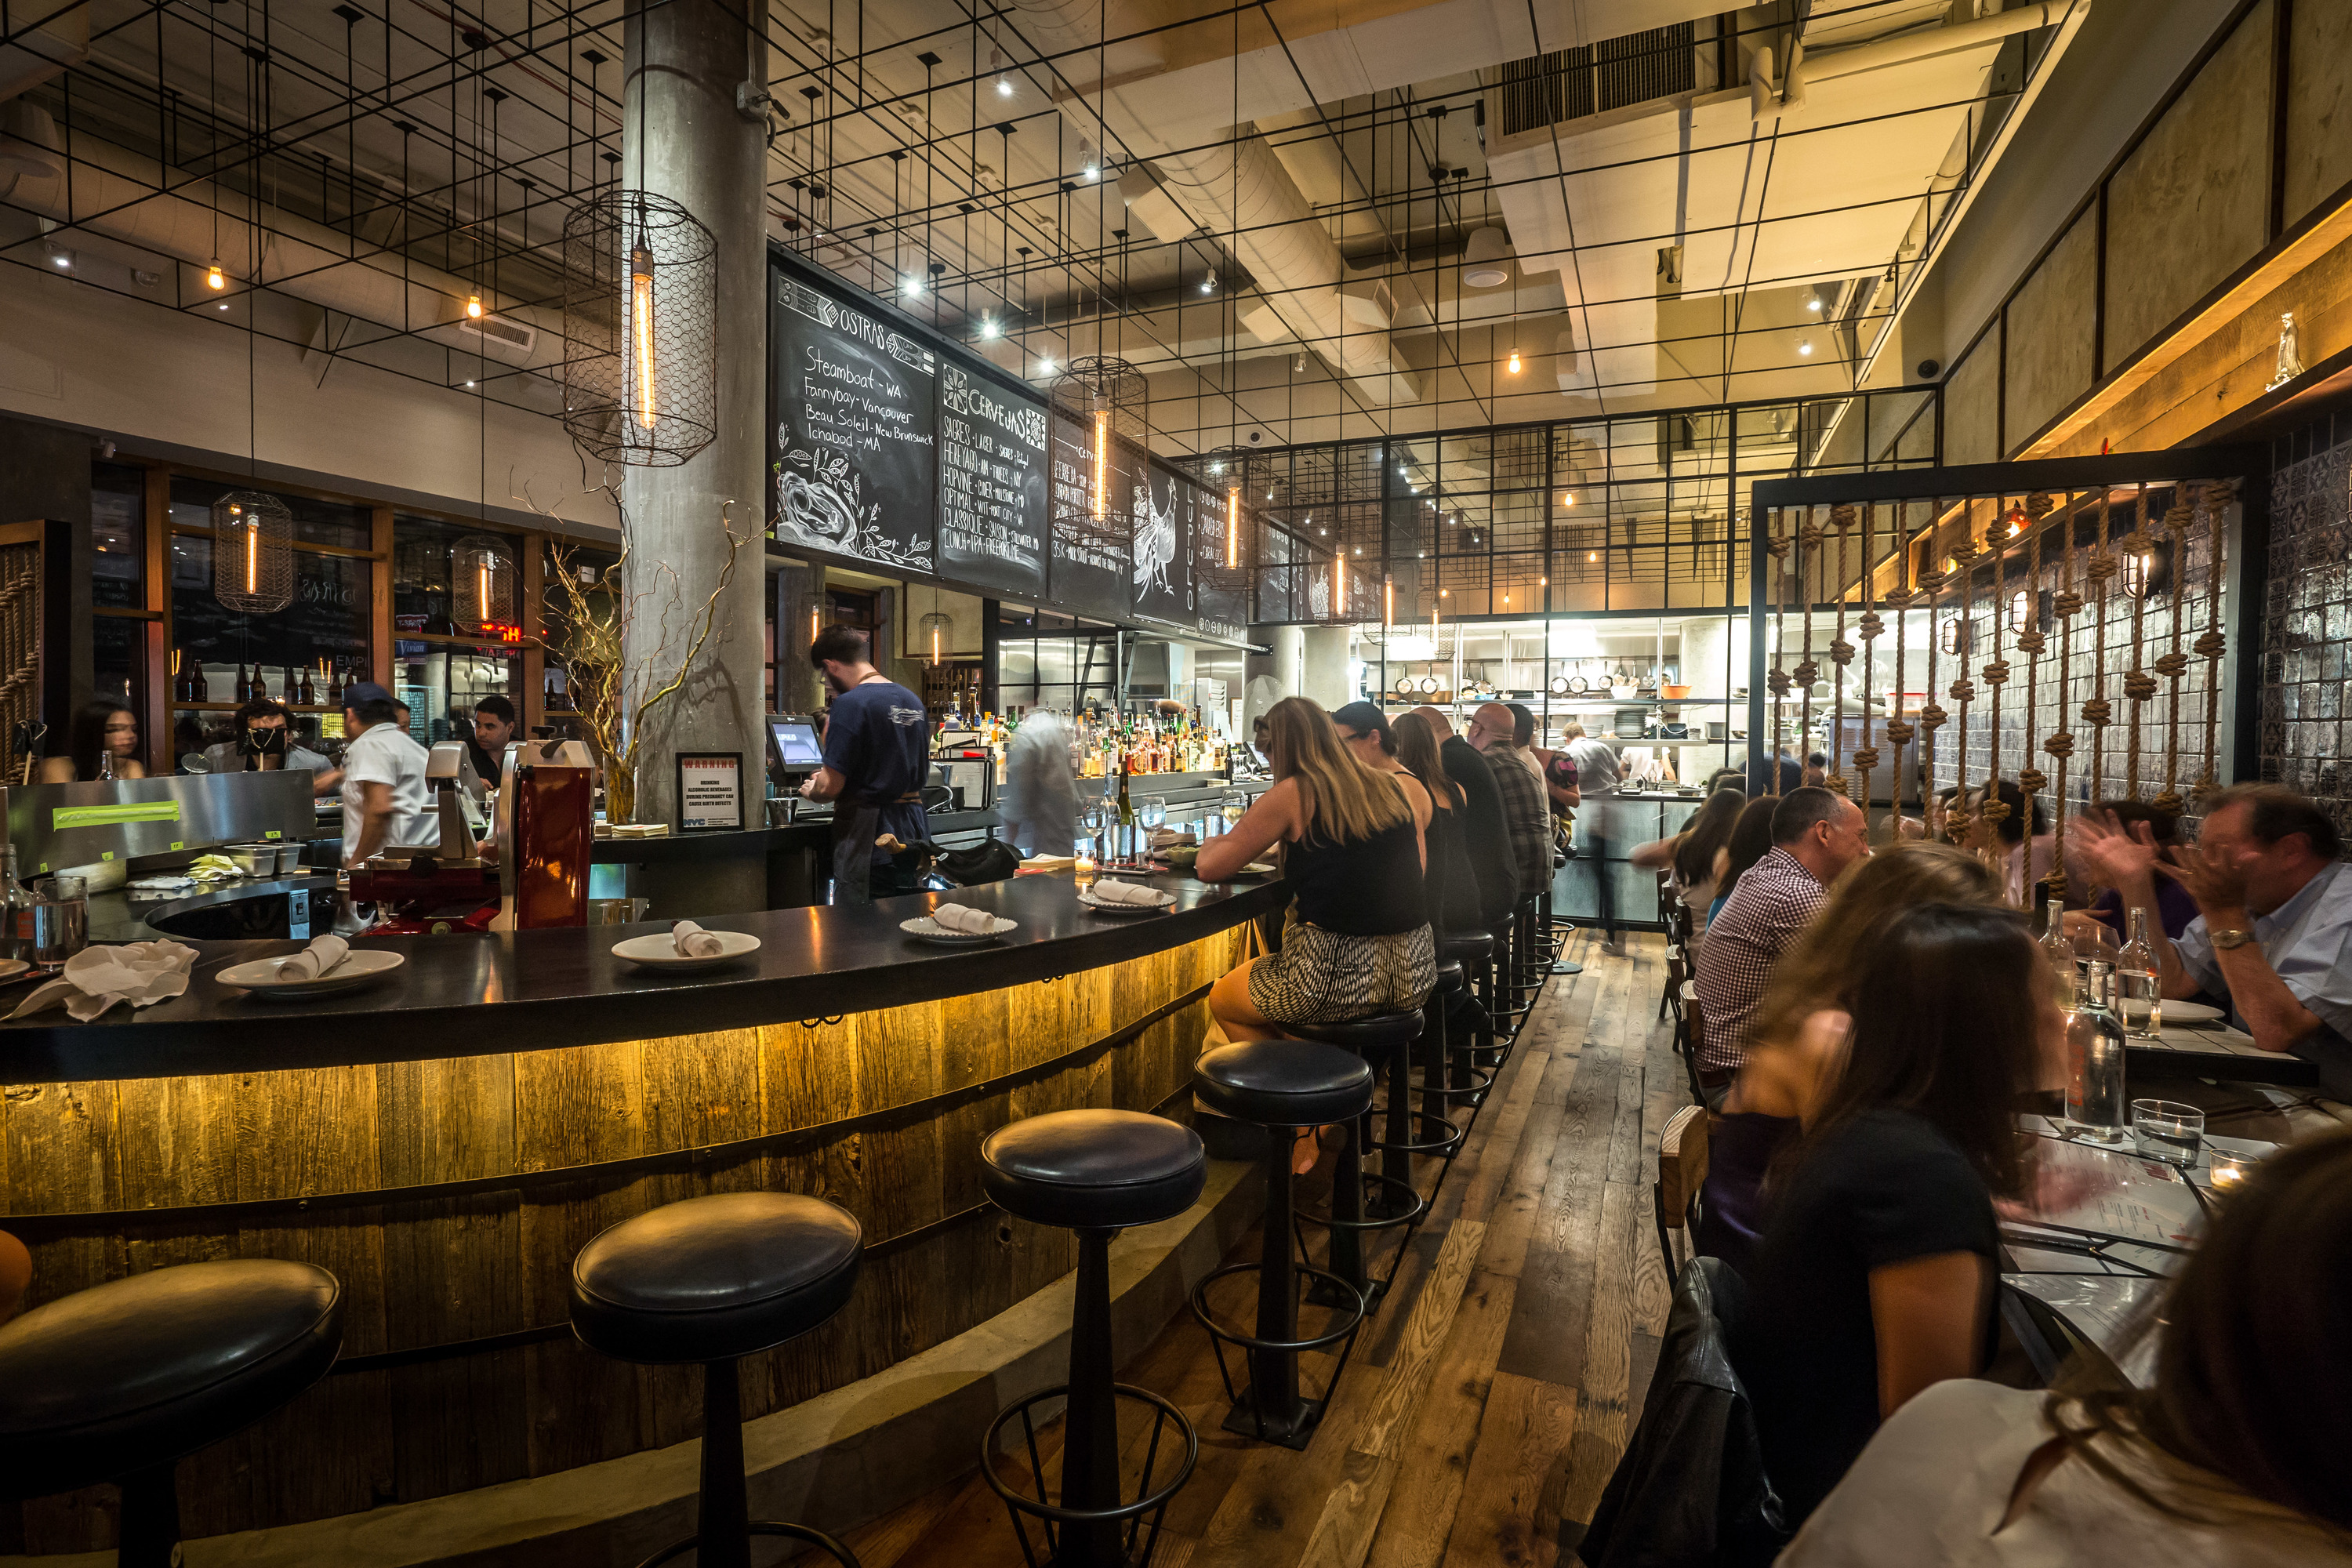 8 Best Restaurants Near Penn Station in NYC